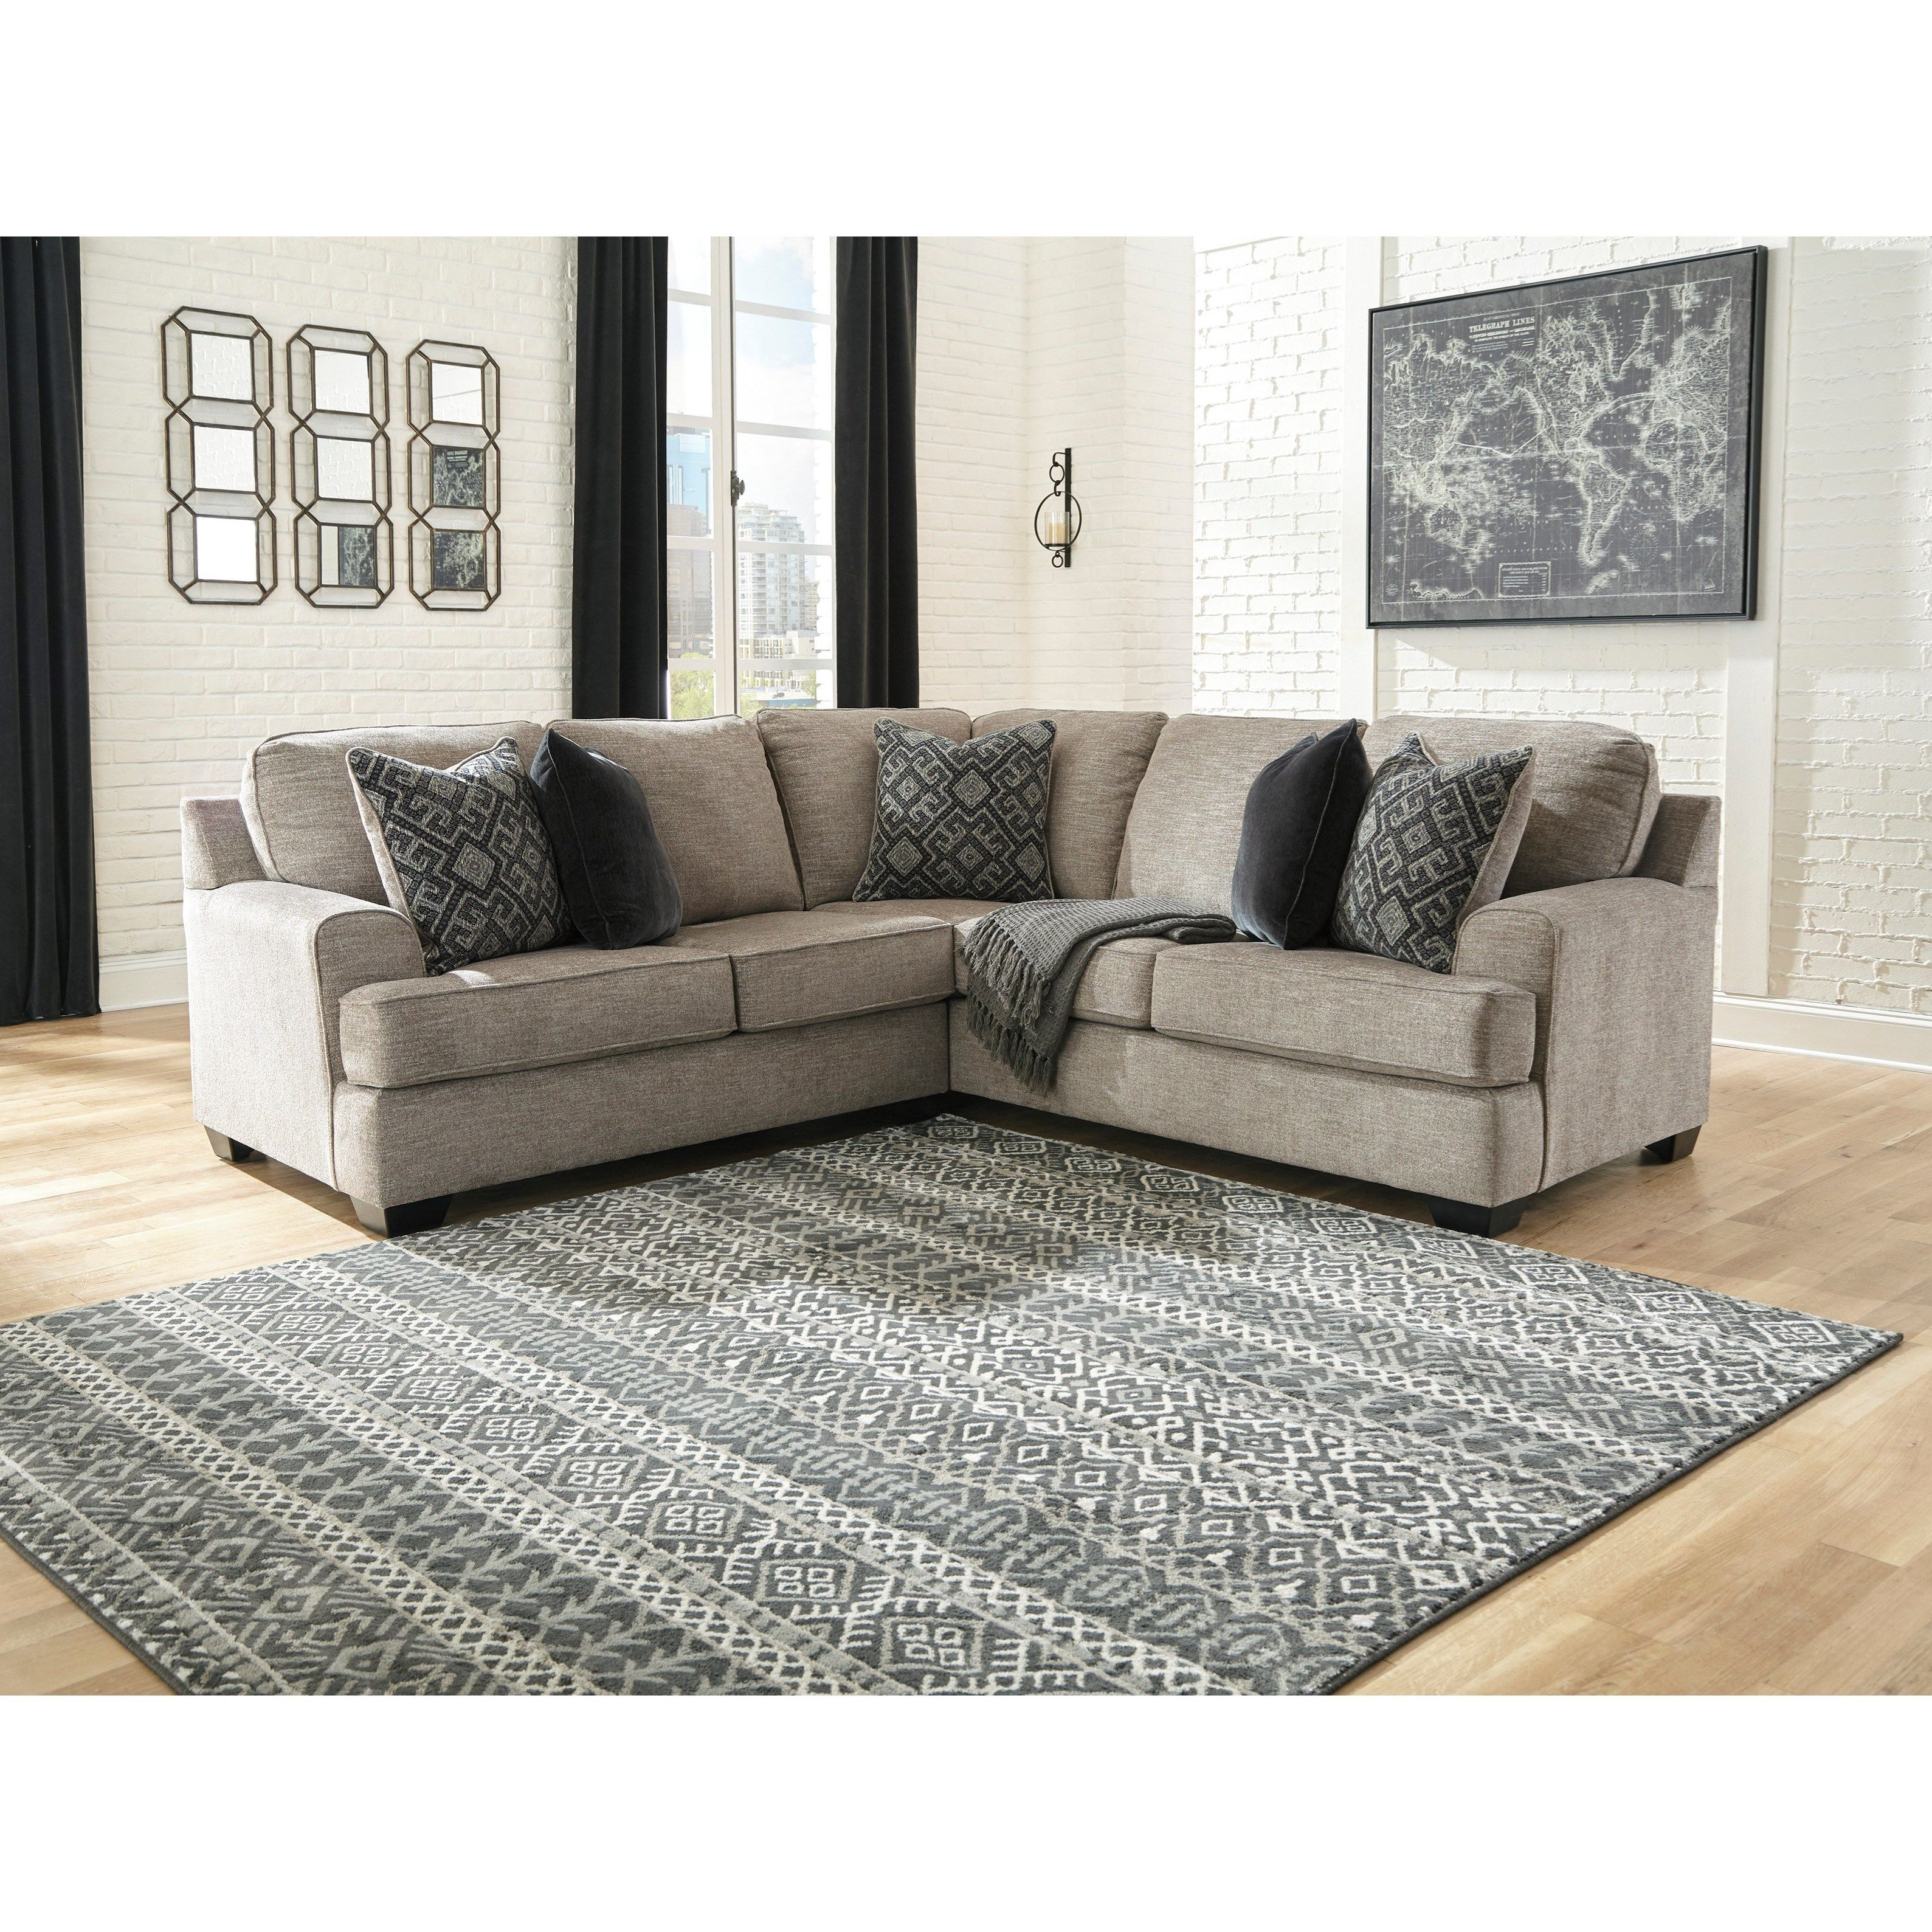 Bovarian 2 Piece Sectional With Track Arms By Signature Design By Ashley Furniture Value City Furniture 3 Piece Sectional